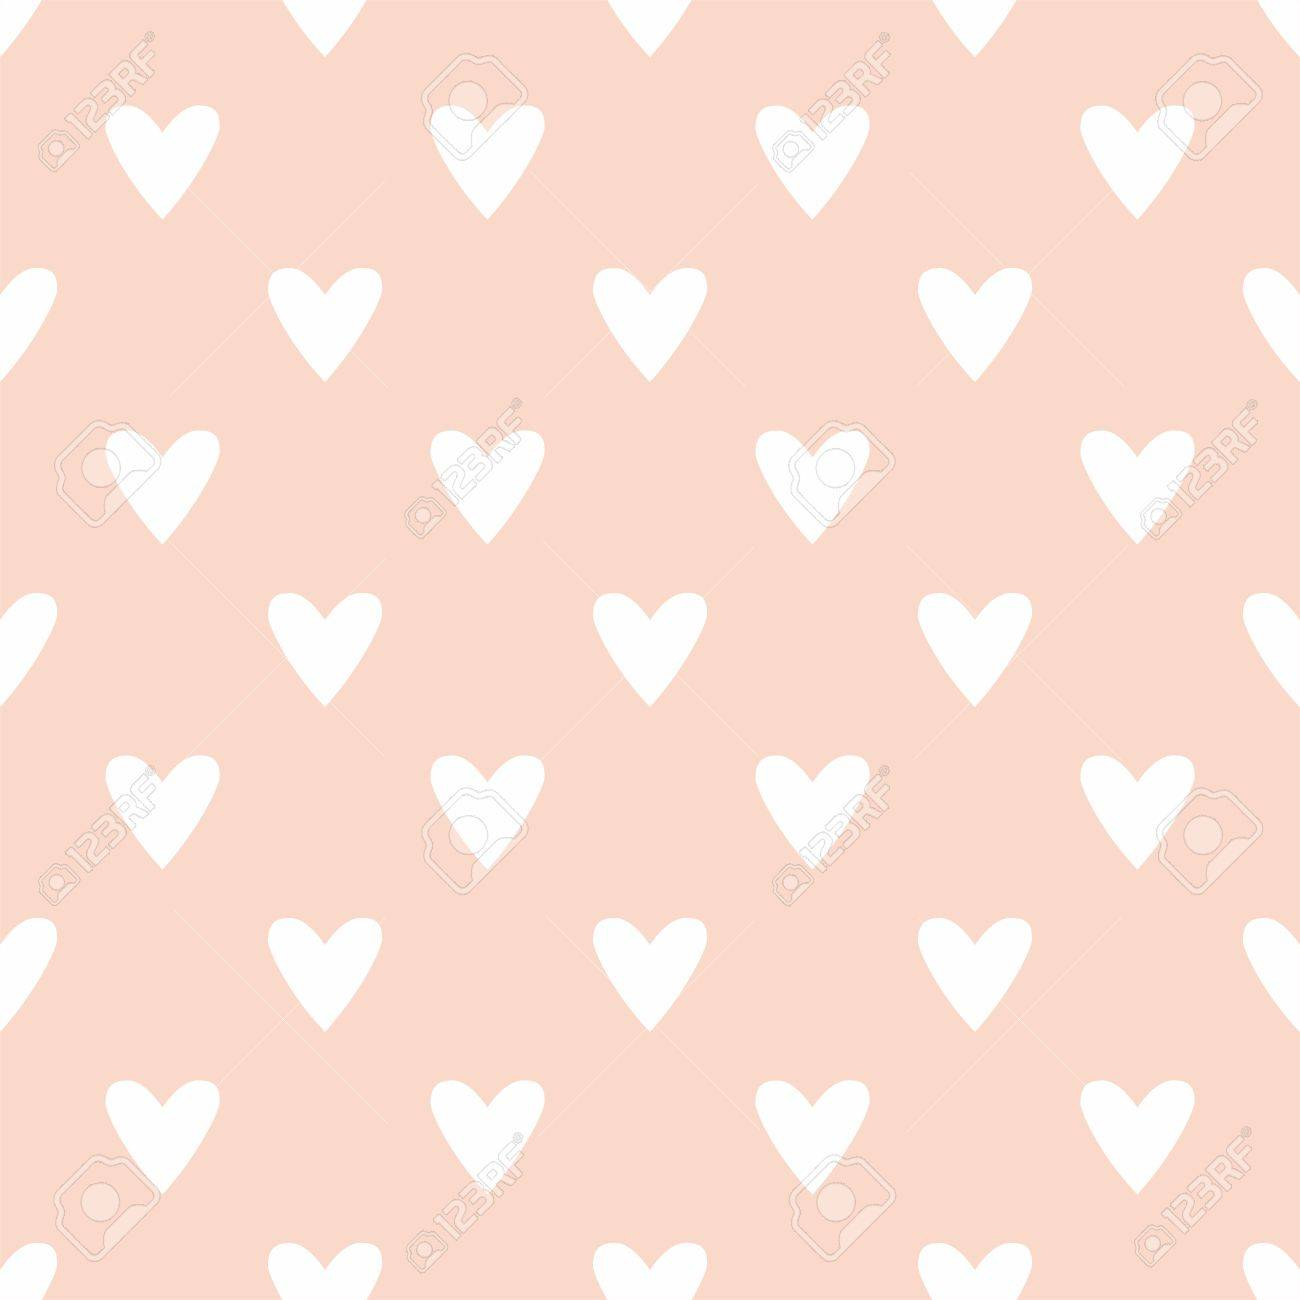 Tile cute pattern with white hearts on pastel pink background tile cute pattern with white hearts on pastel pink background stock vector 39565487 voltagebd Gallery